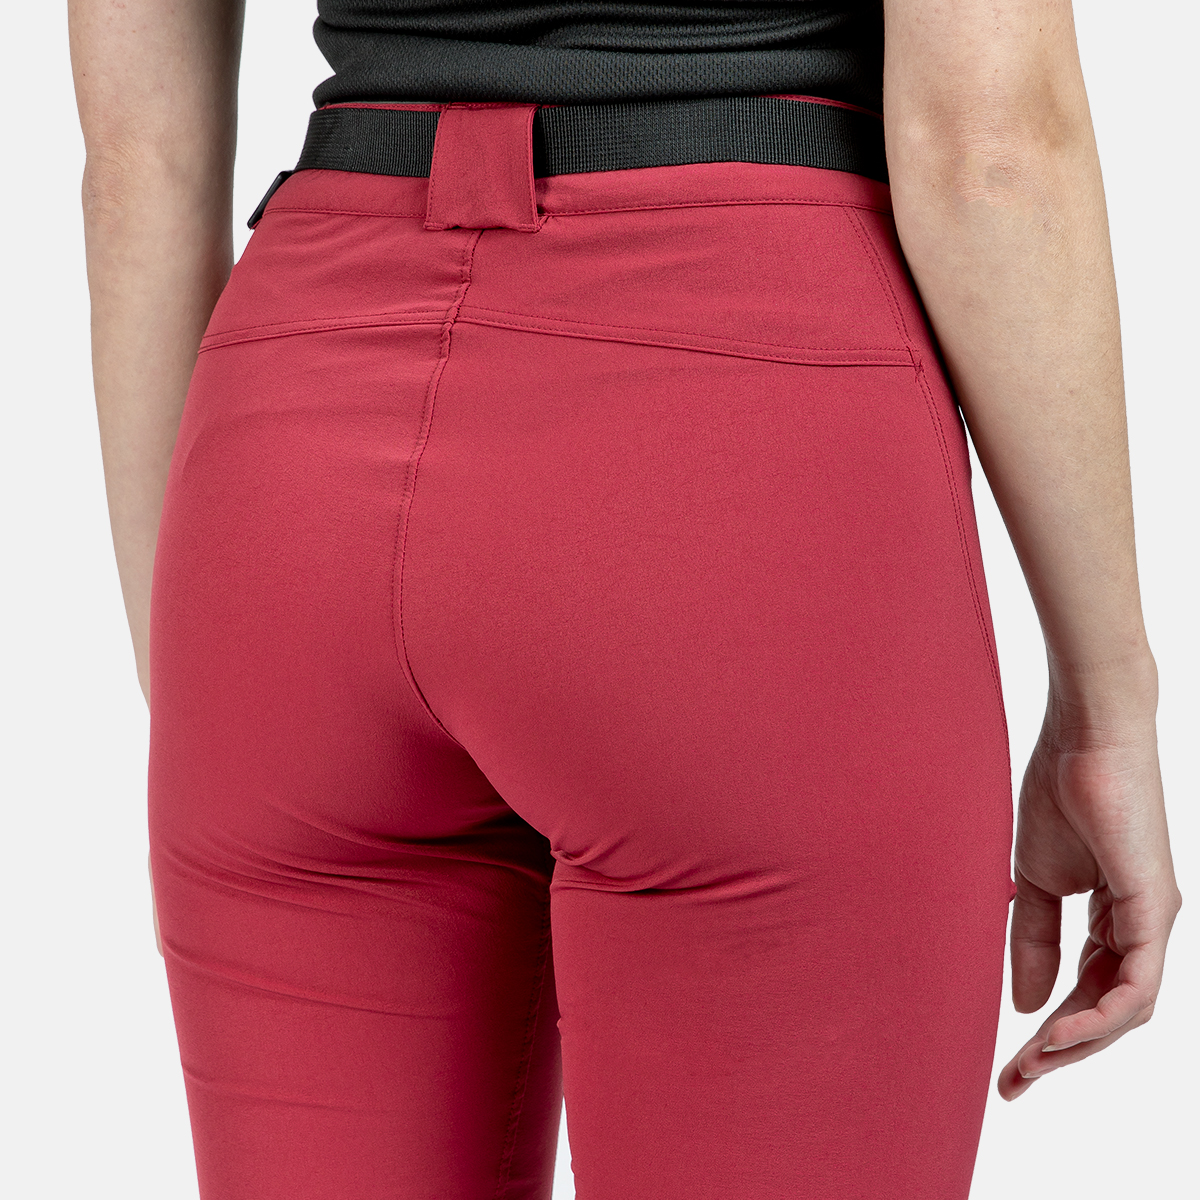 WOMAN'S FORATA MOUNT STRETCH PANT RED